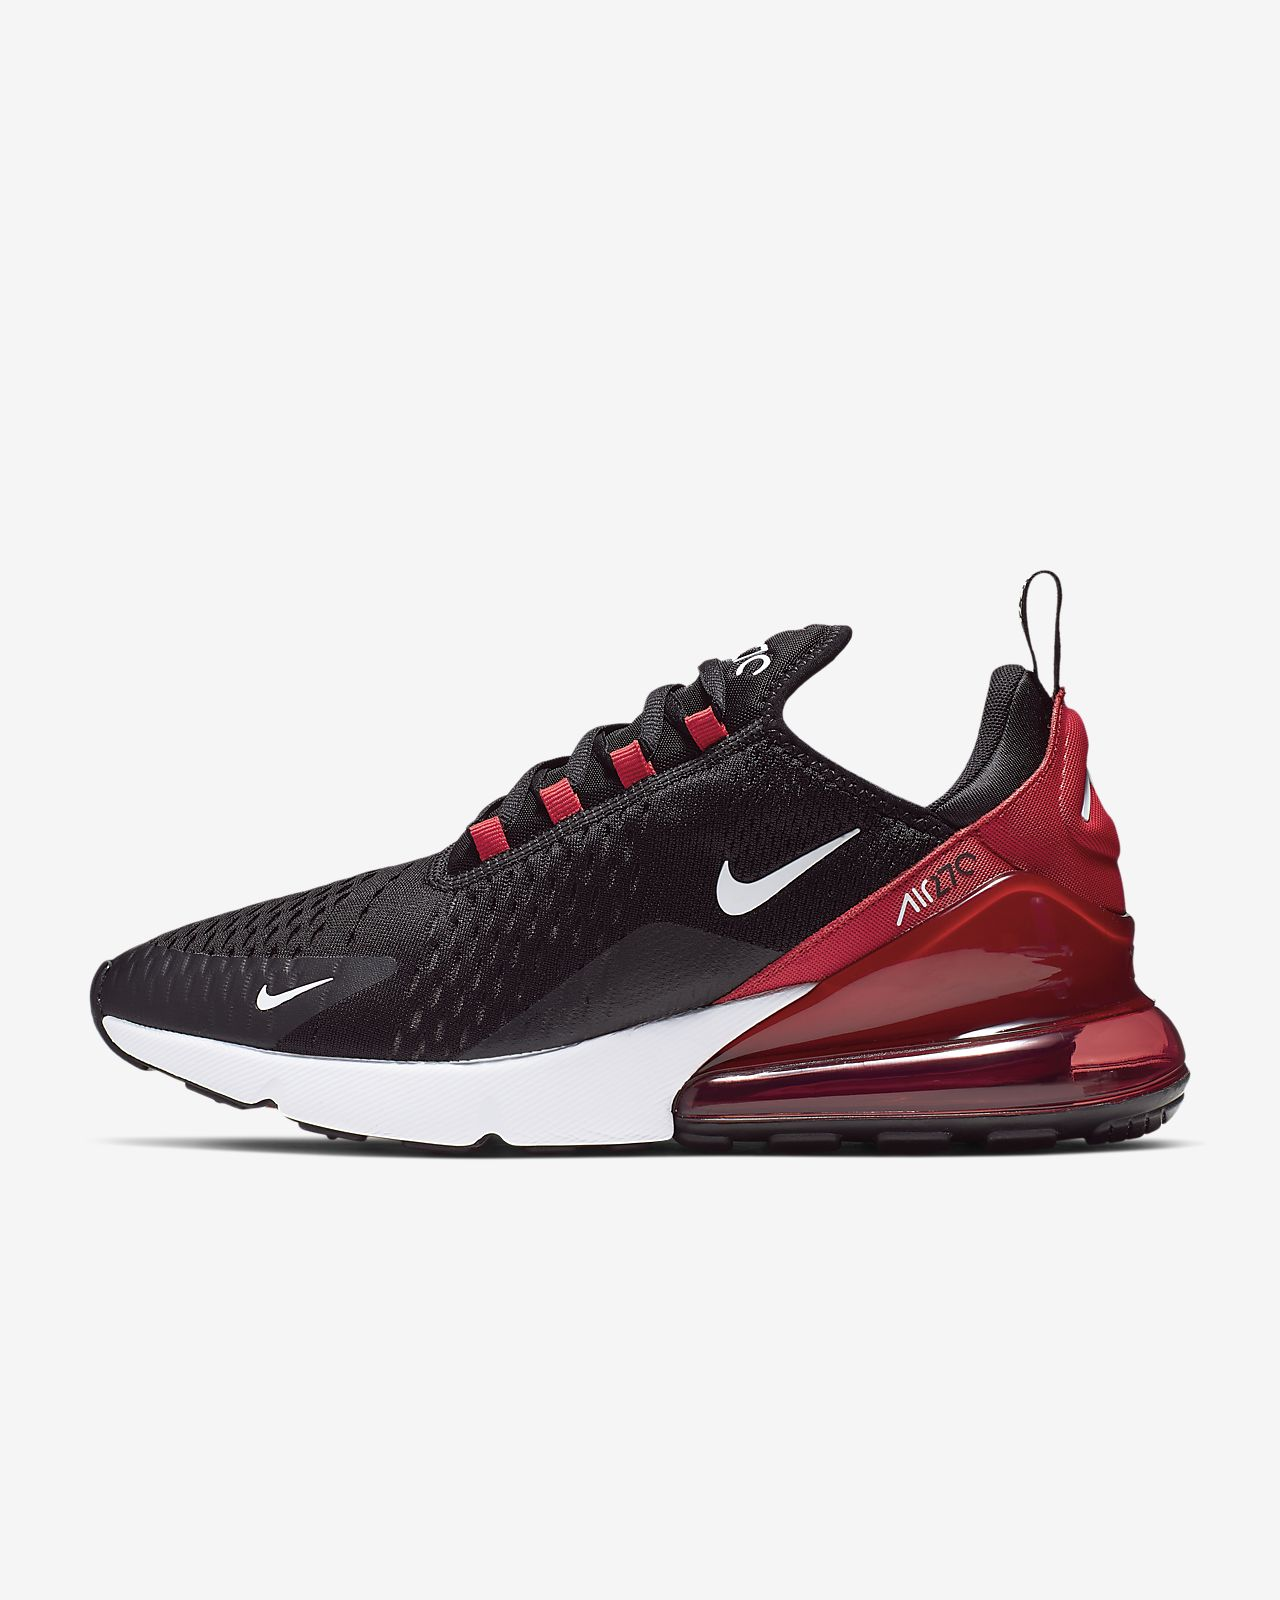 6a907faa74df nike air max 270 men s white and red Nike Air Max 270 Men s Shoe.